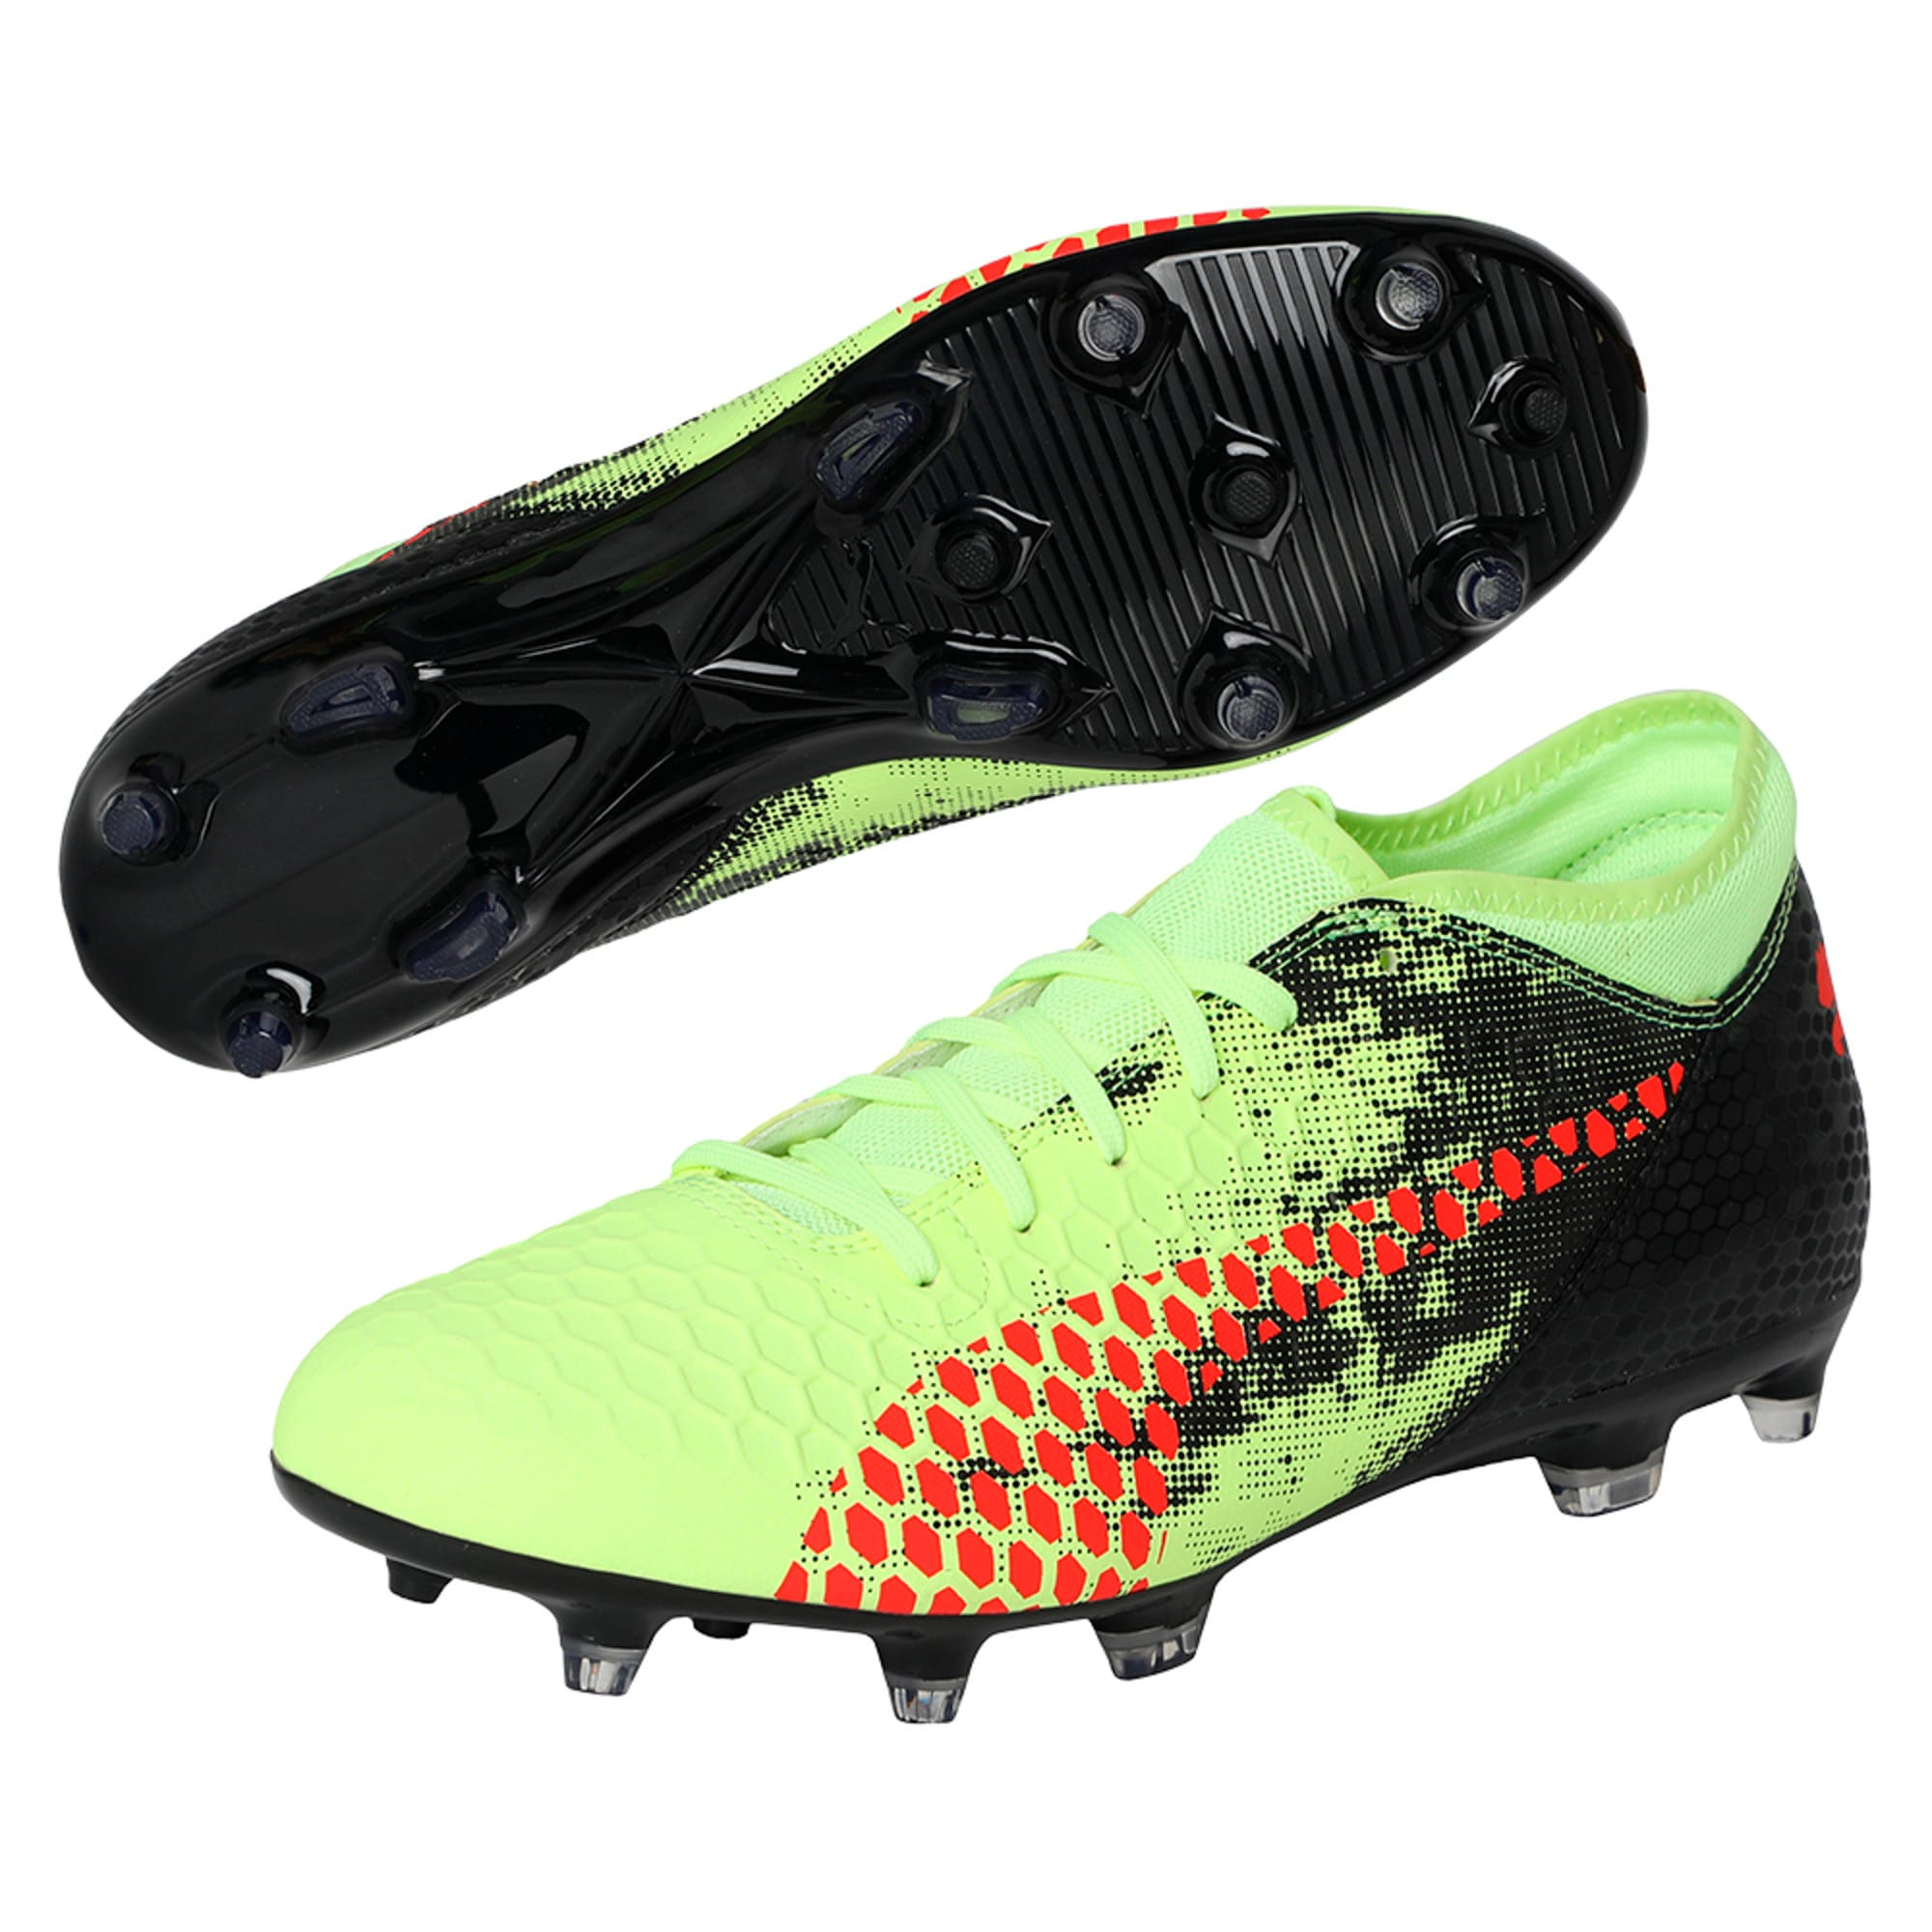 Thumbnail 6 of FUTURE 18.4 FG/AG Men's Football Boots, Yellow-Red-Black, medium-IND